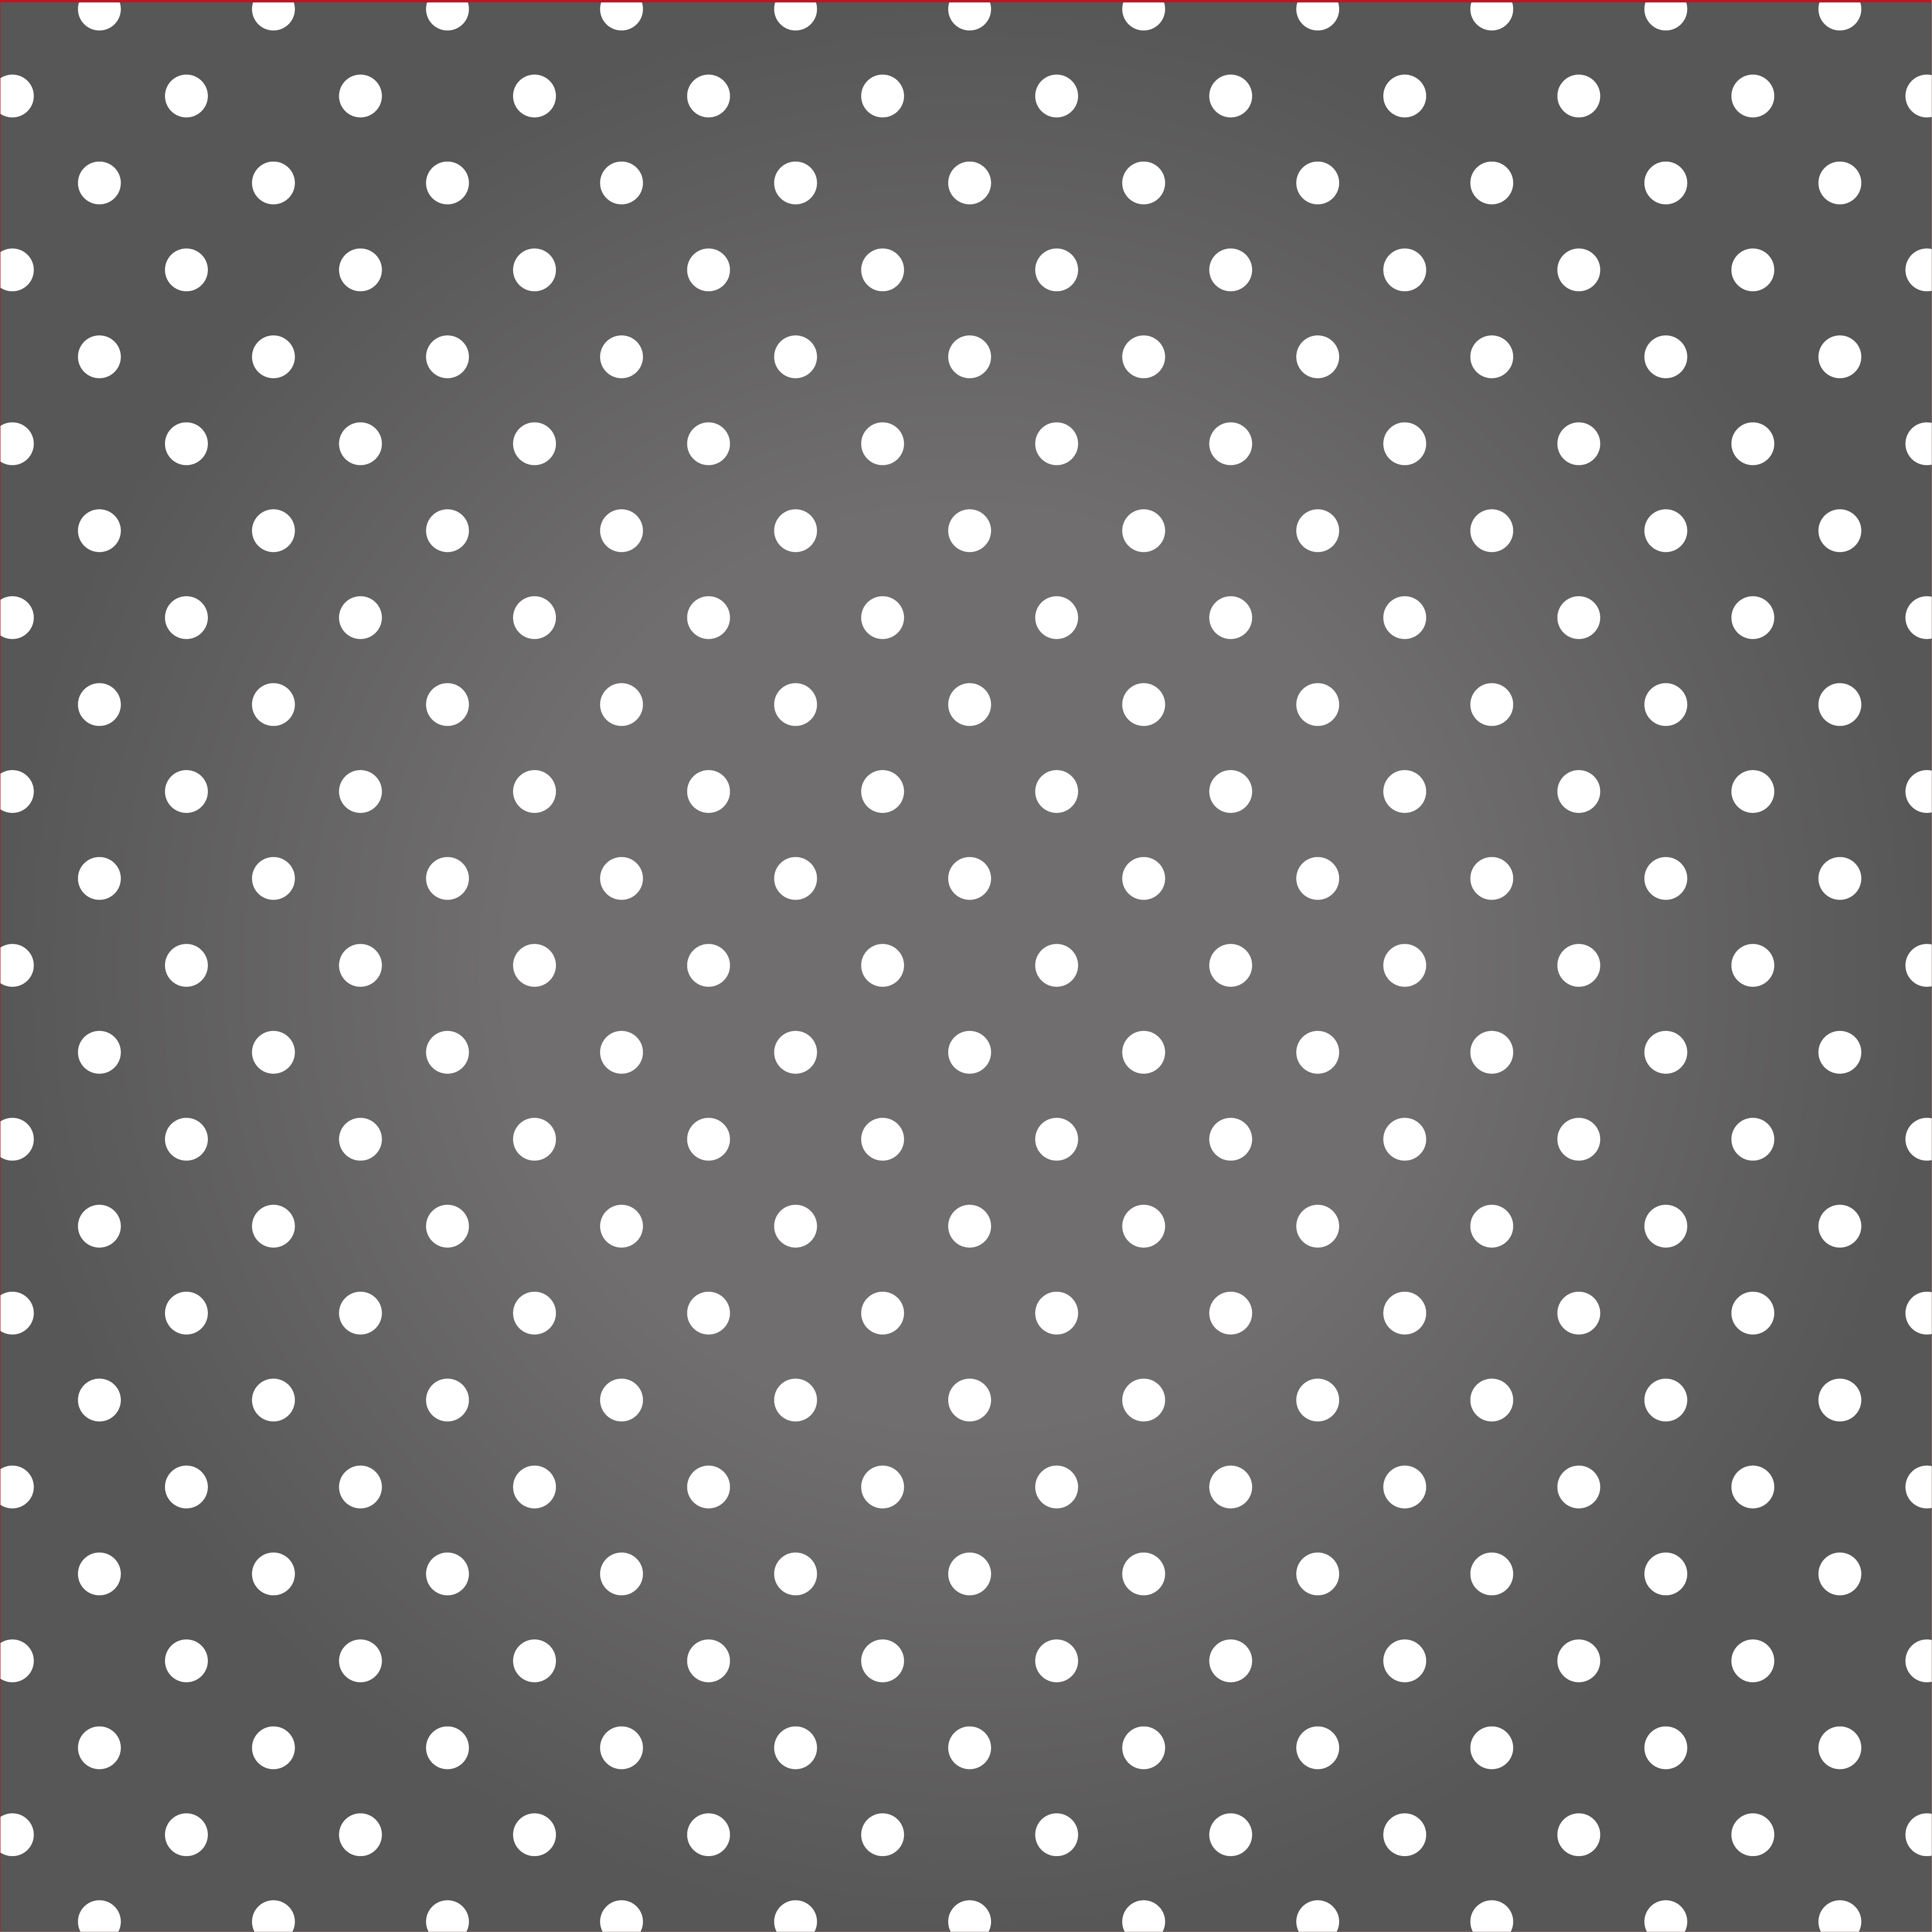 Abstract Round Logos: Gray Background With White Dots.